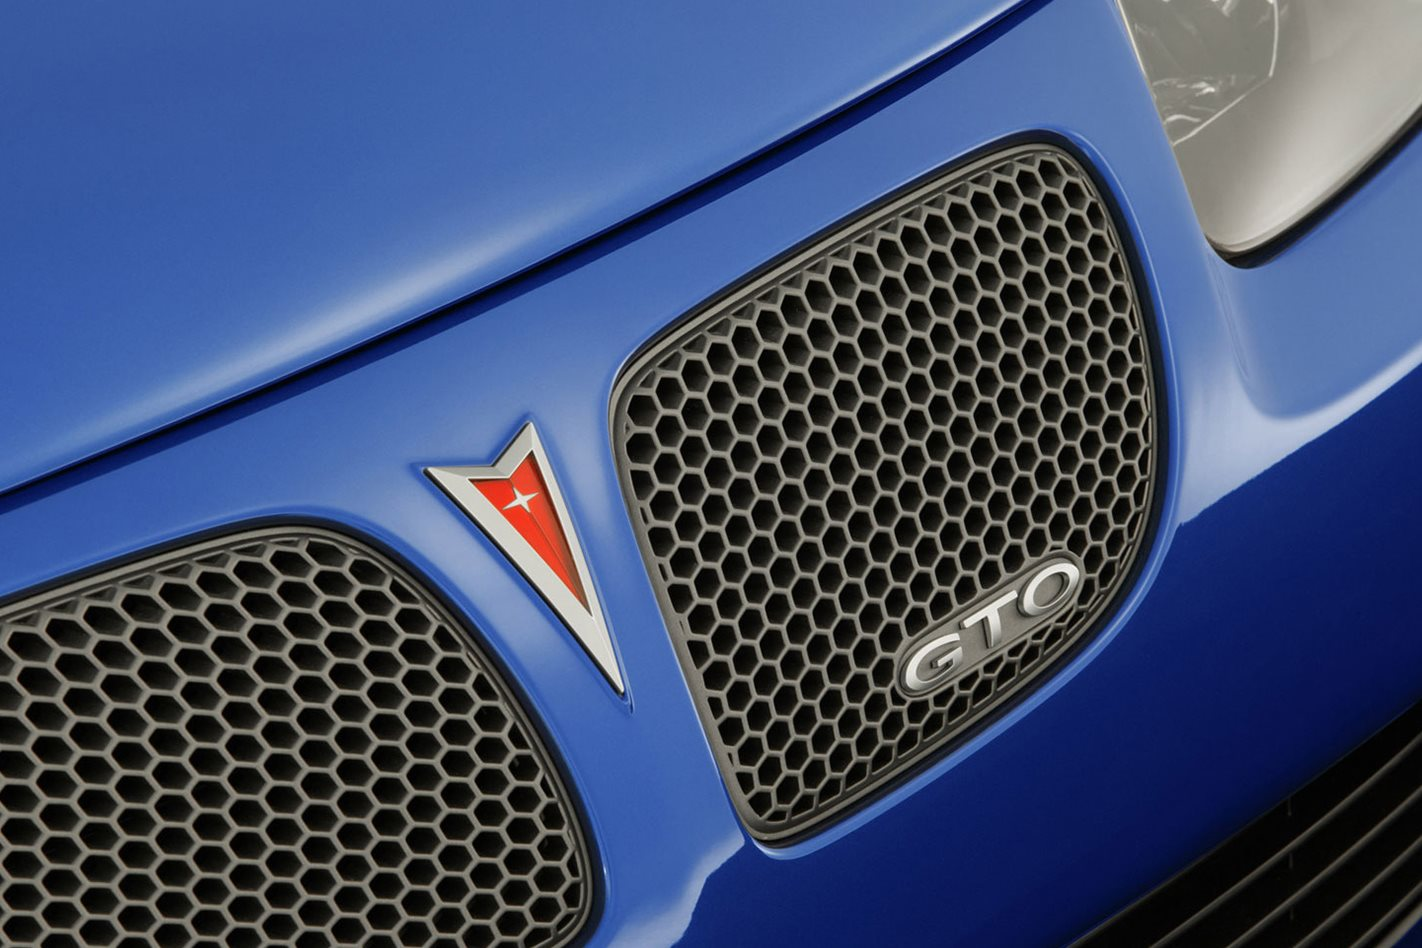 2004-Pontiac-GTO-front-grille.jpg